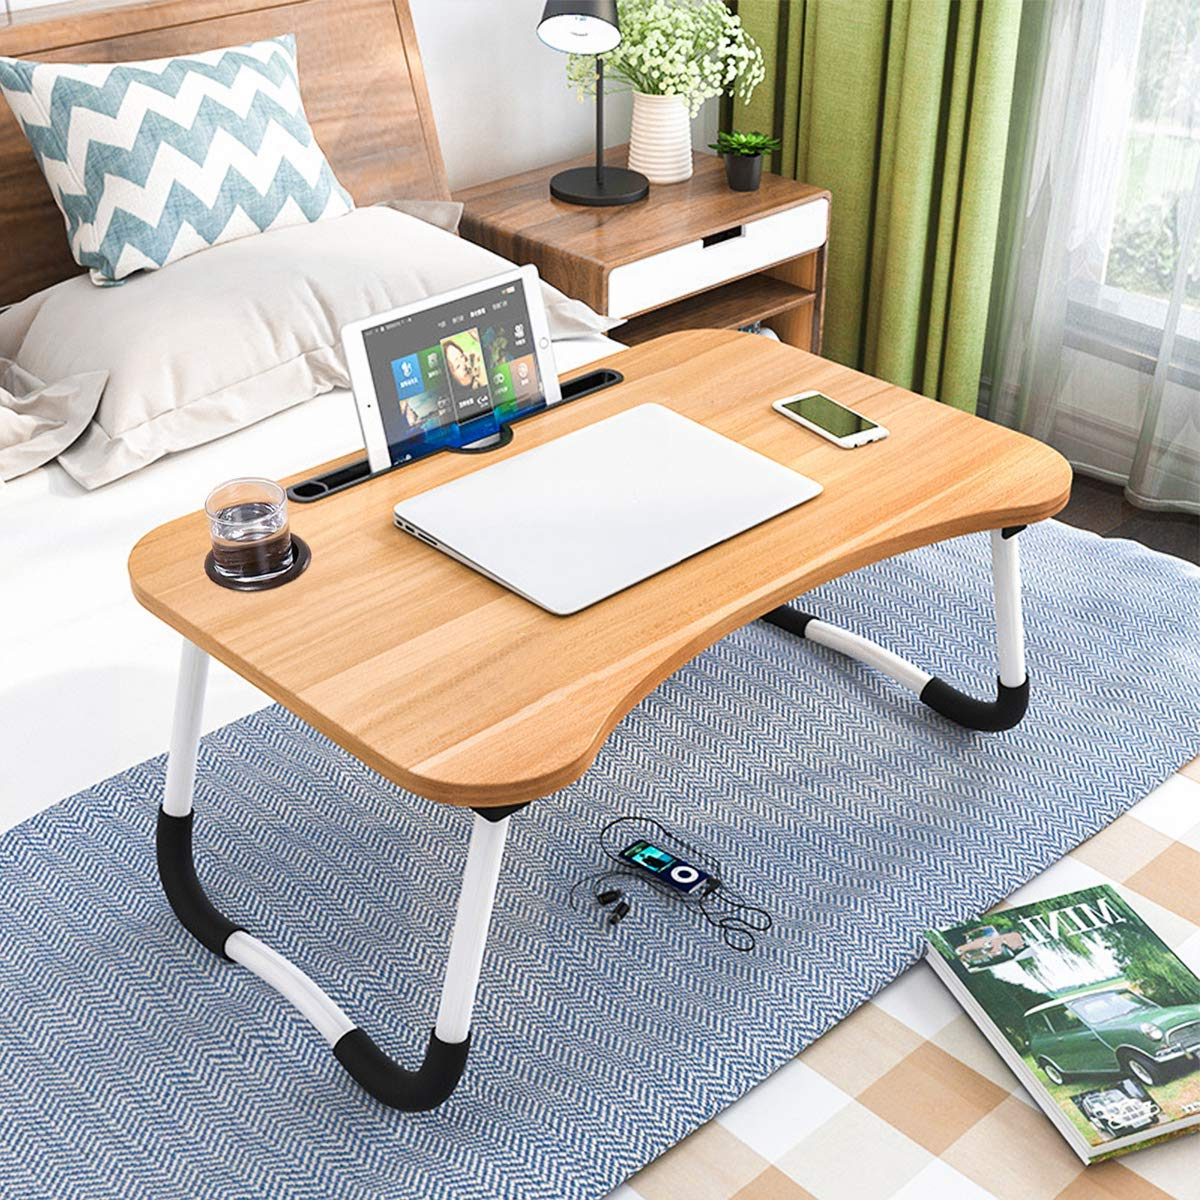 Foldable Laptop Table, CHARMDI Portable Laptop Bed Tray TableFolding Dormitory Table Notebook Stand Reading HolderBreakfast Serving Bed Tray with Tablet Slots & Cup Holder for Bed/Couch/Sofa-Golden